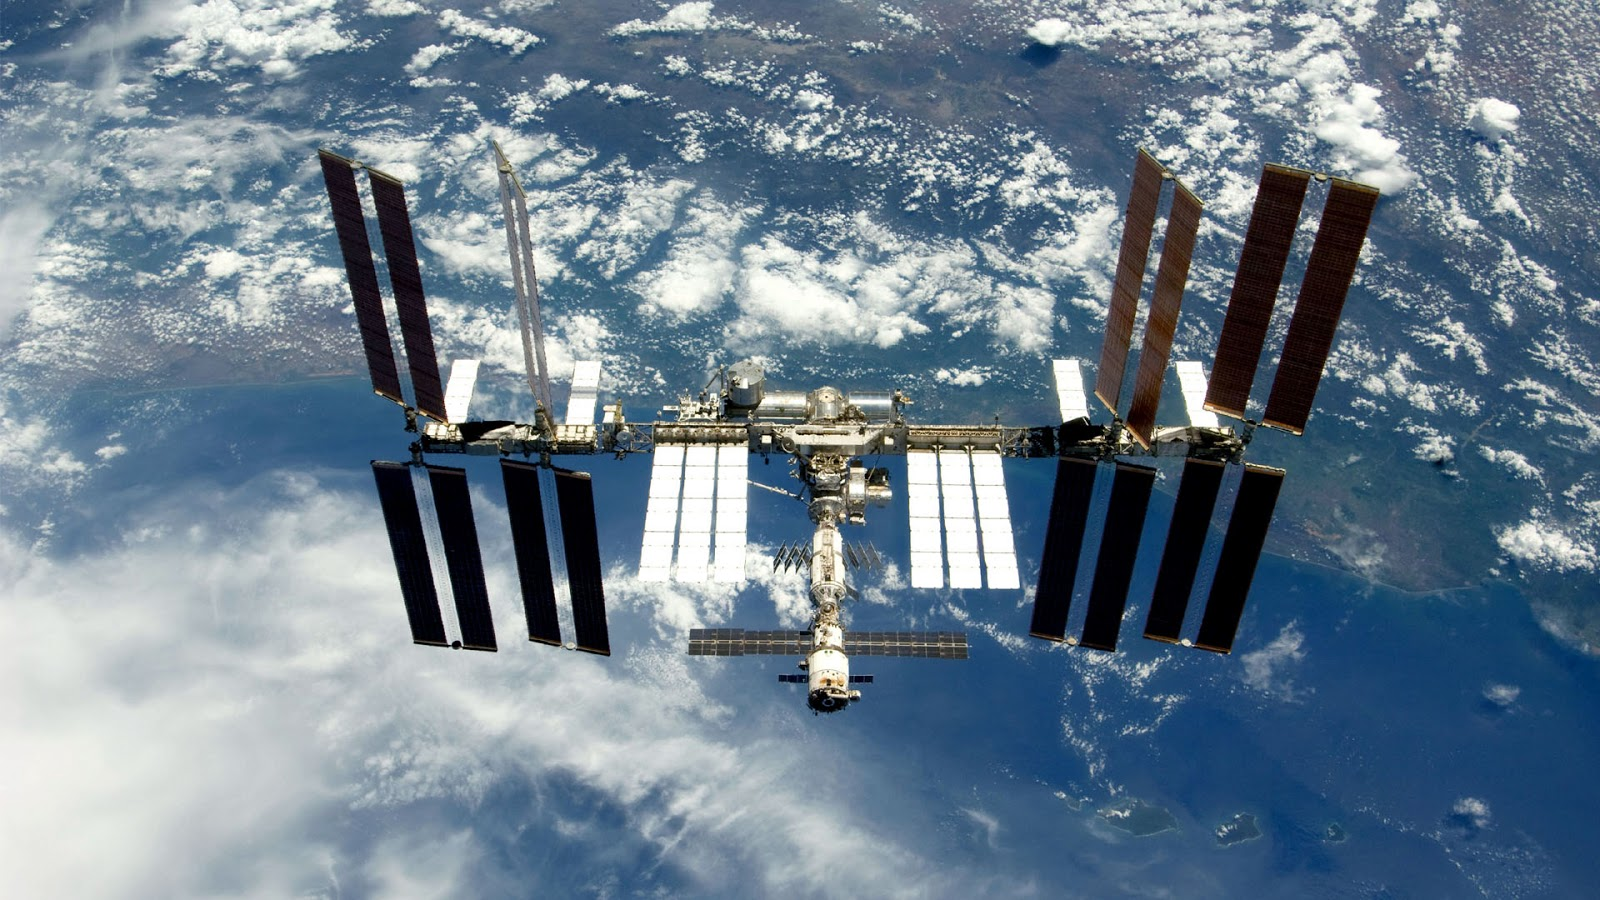 32 space station hd - photo #1